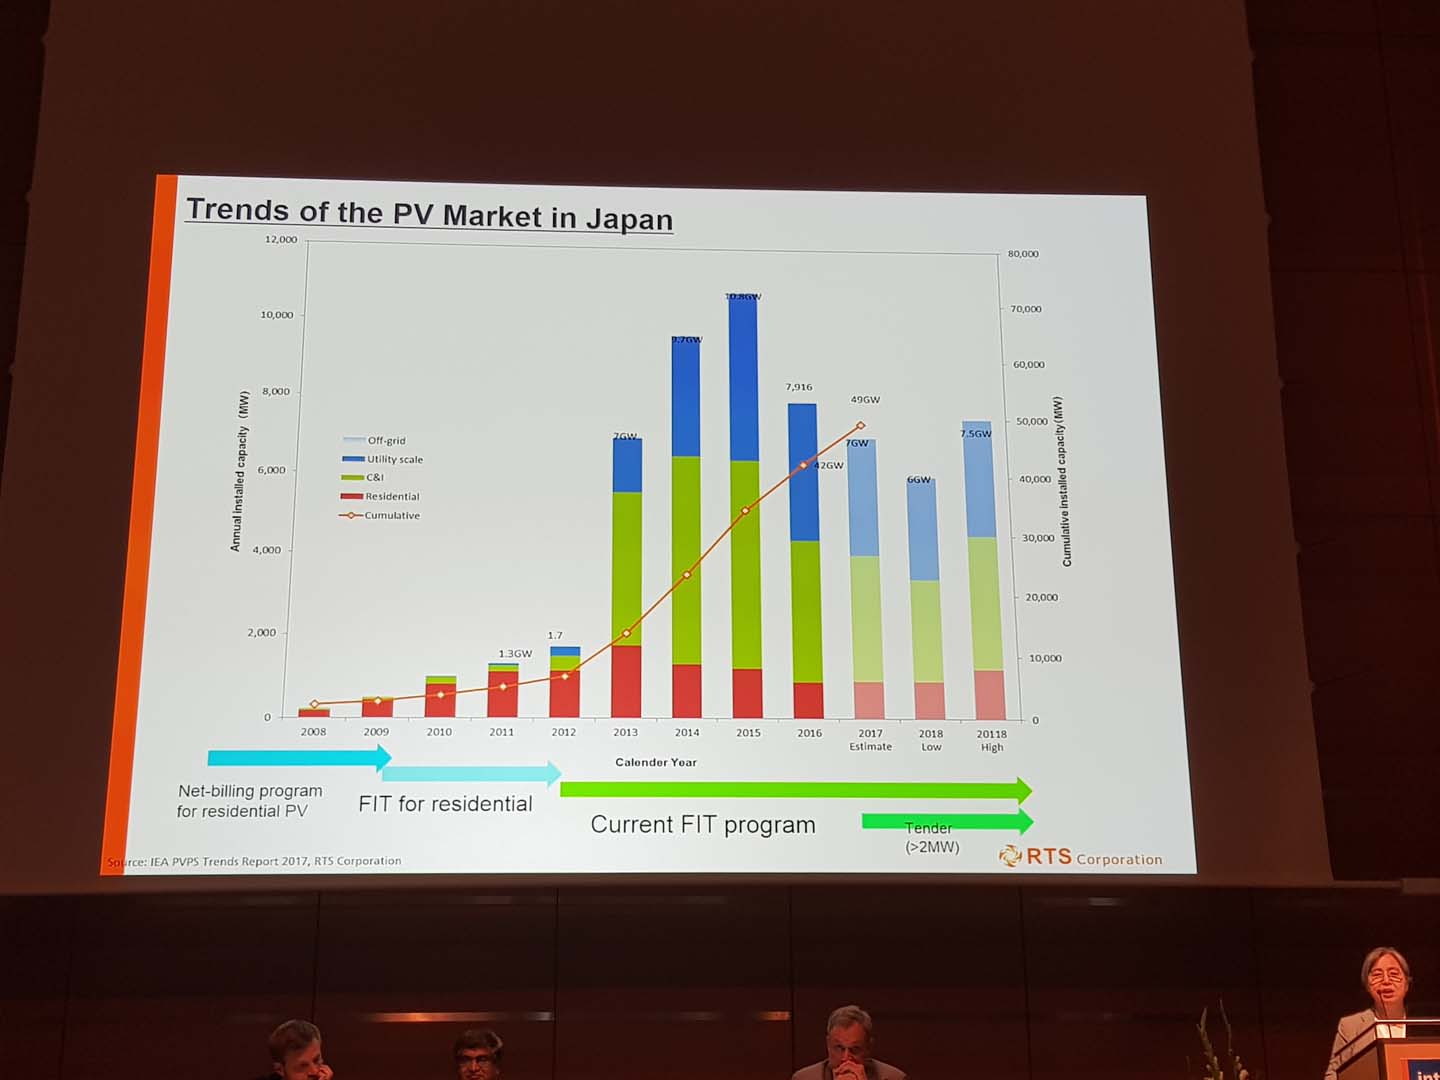 RTS Corporation had estimated Japan installed around 7GW of PV in 2017 and guided installations to be in the range of 6GW to 7.5GW in 2018.